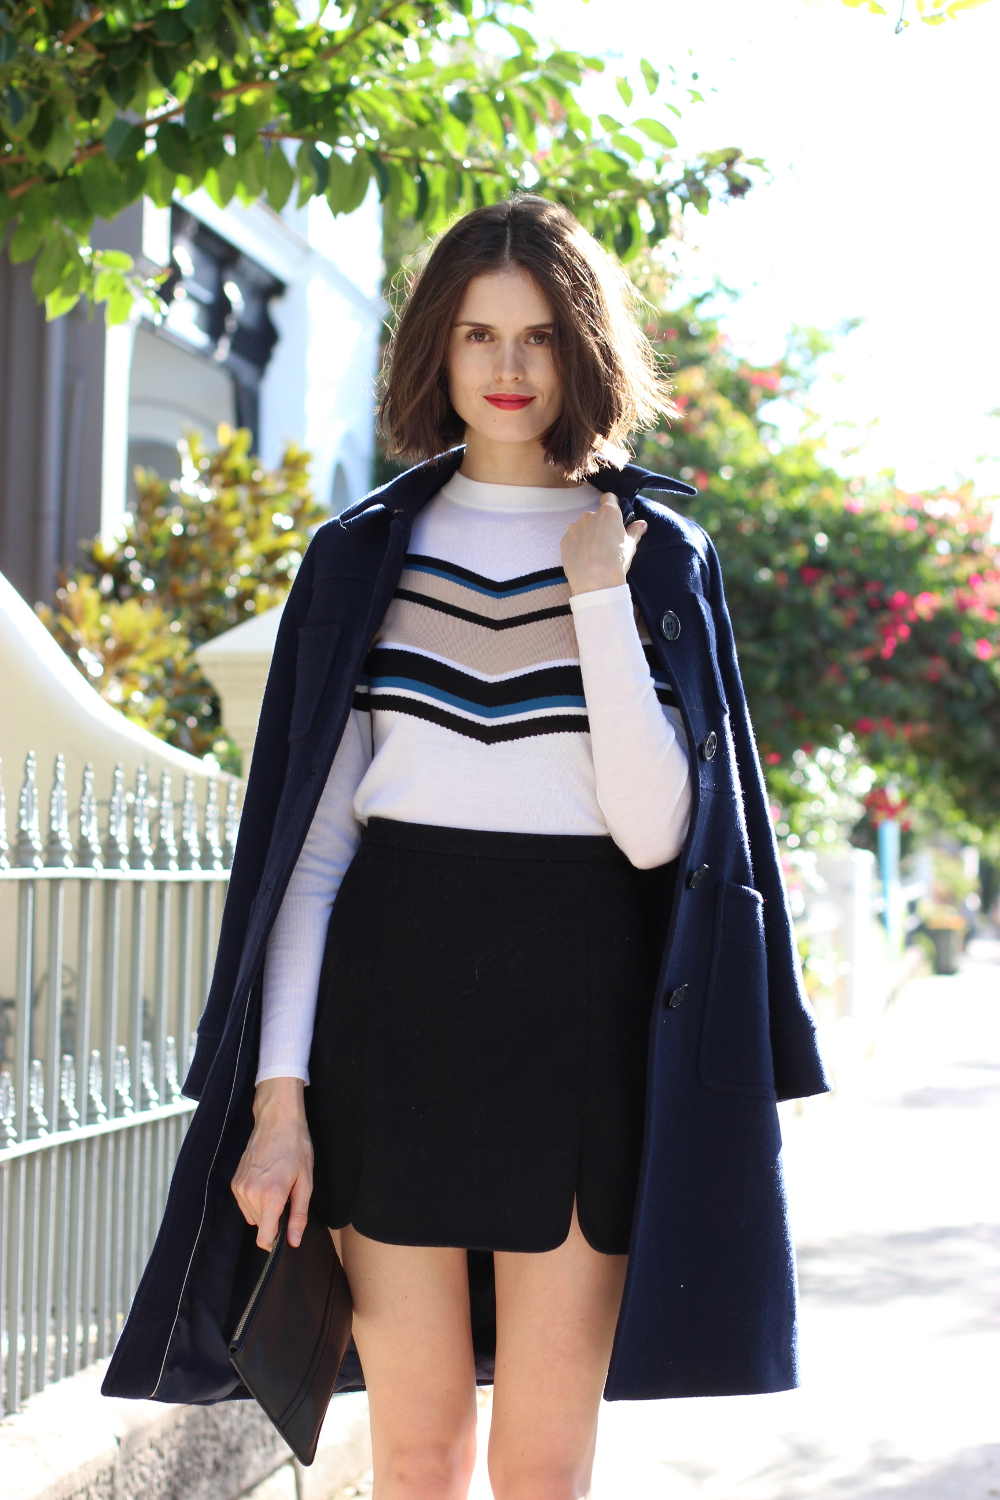 BY CHILL FASHION | Chloe Hill wearing Boden Clothing wool coat, Cue striped sweater, opening ceremony mini skirt and Oroton monogramed purse